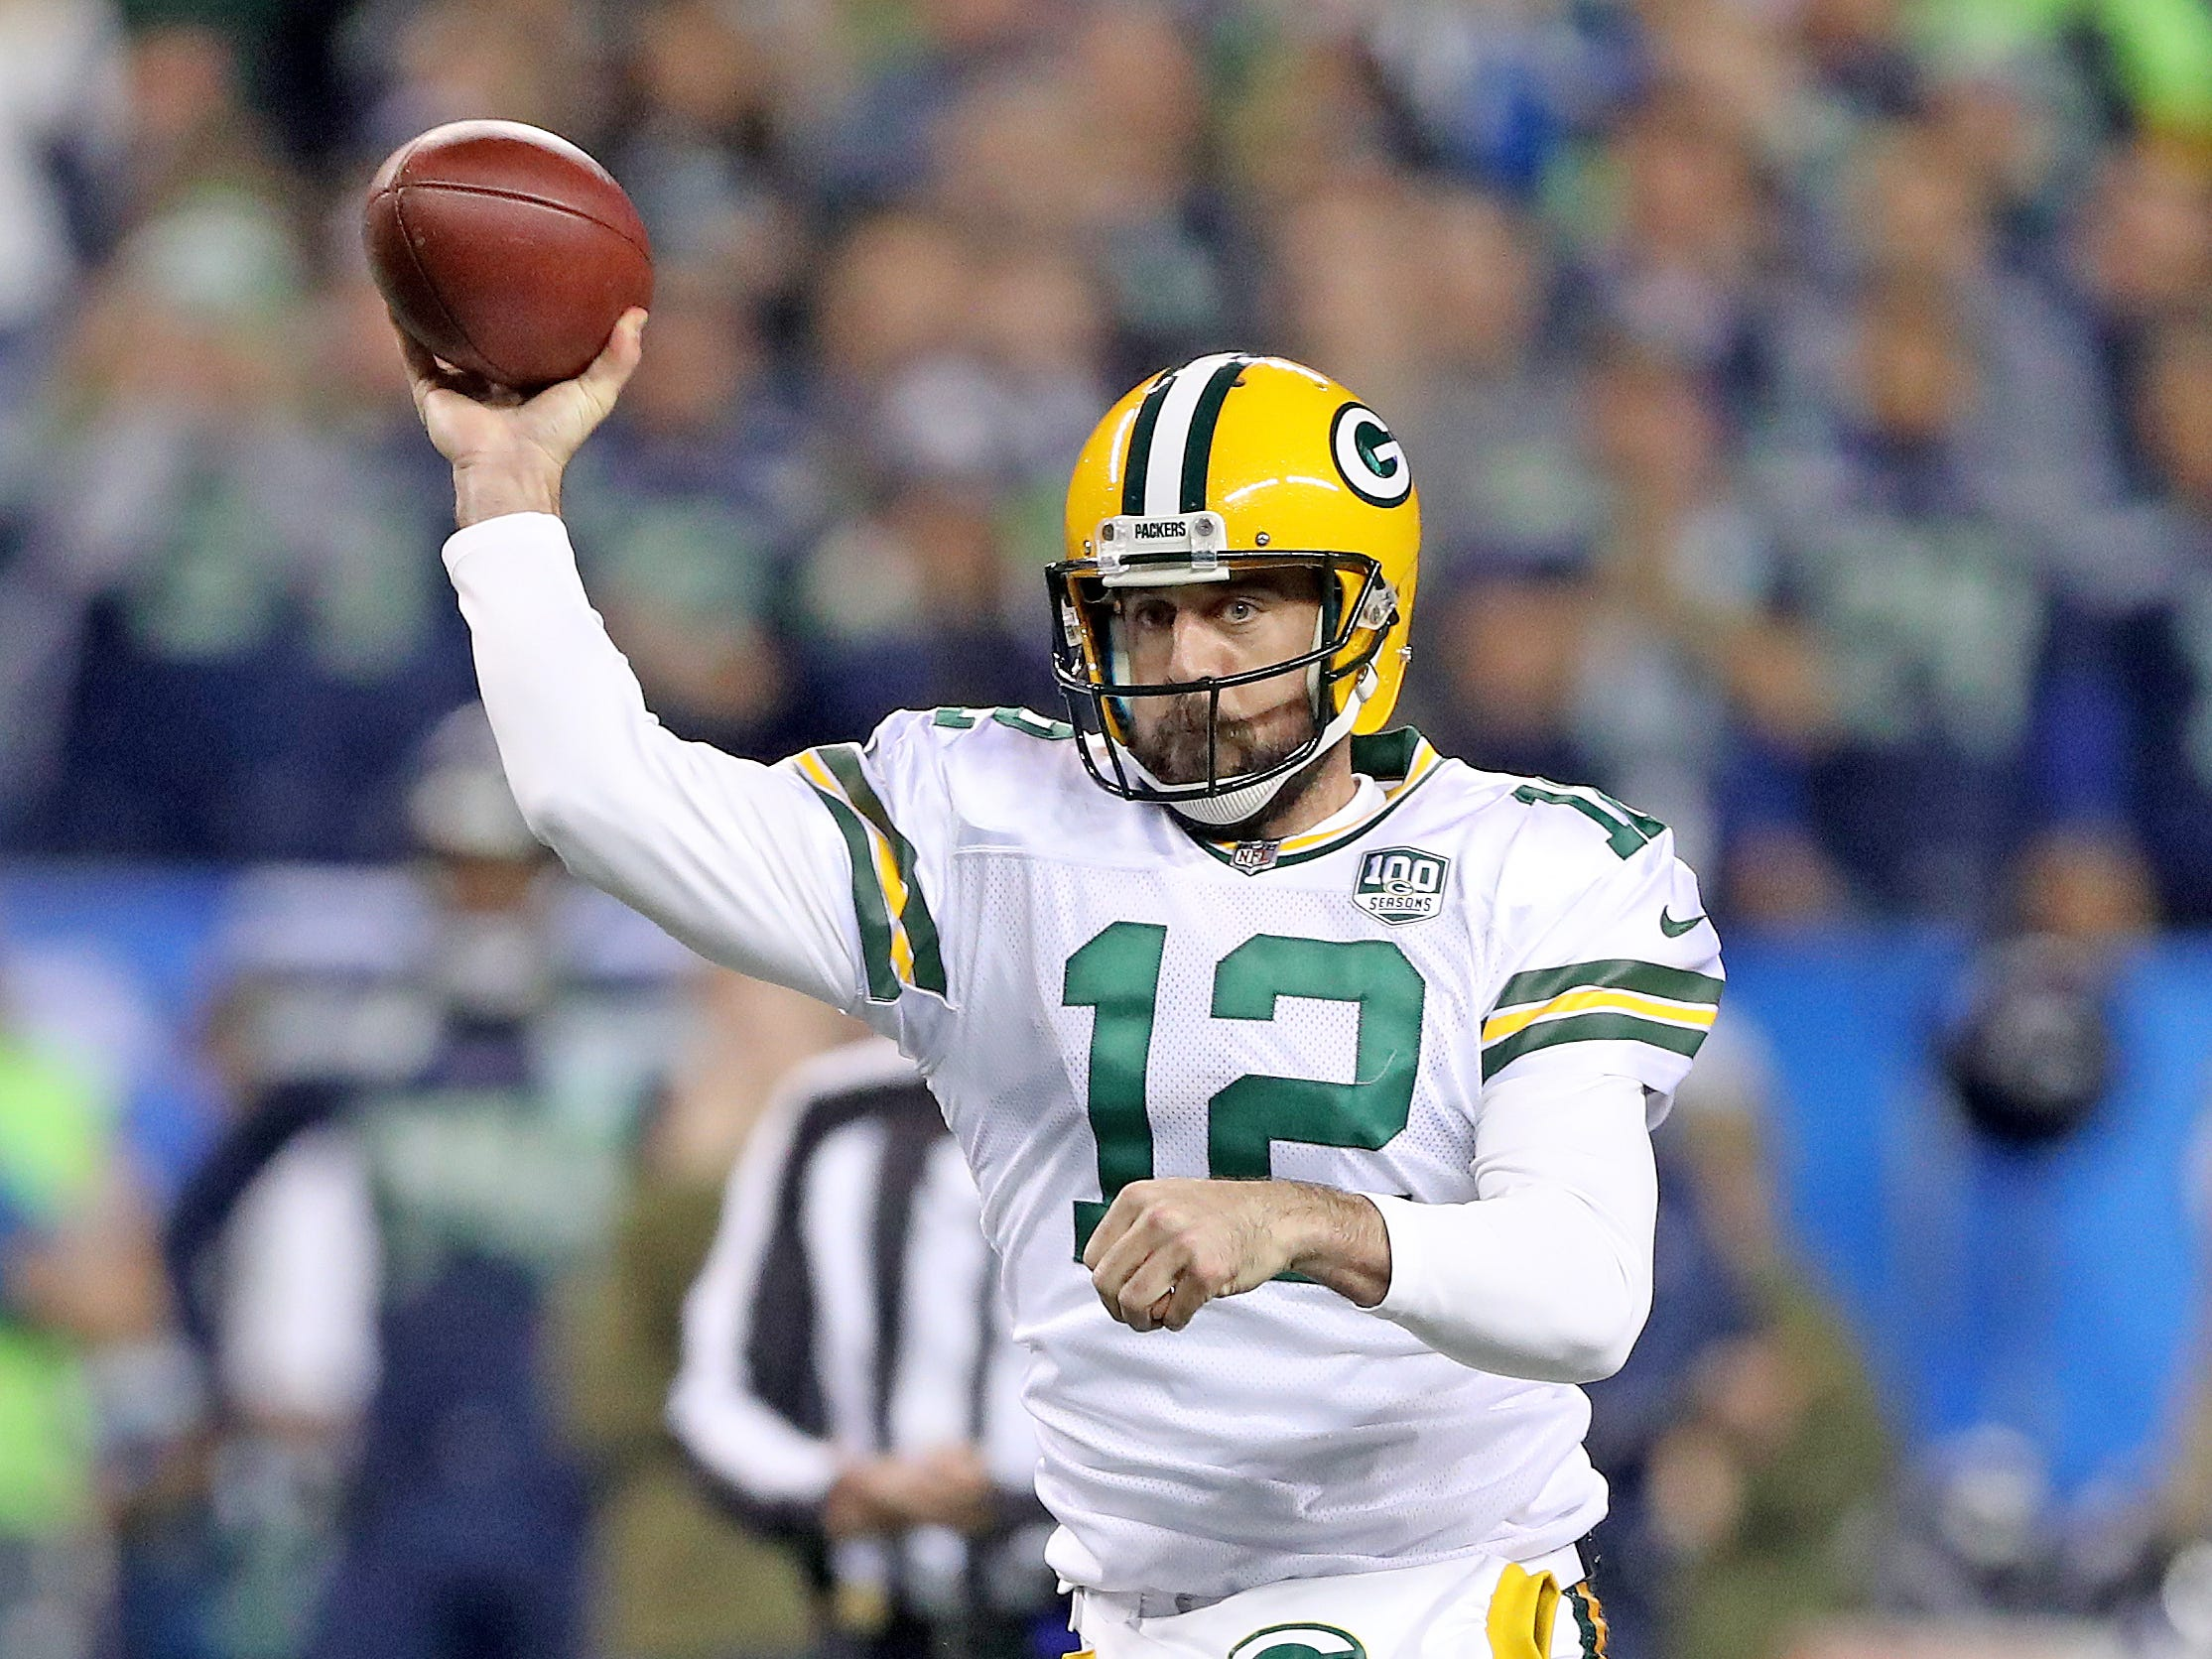 Green Bay Packers quarterback Aaron Rodgers (12) throws on the run against the Seattle Seahawks at CenturyLink Field Thursday, November 15, 2018 in Seattle, WA. Jim Matthews/USA TODAY NETWORK-Wis